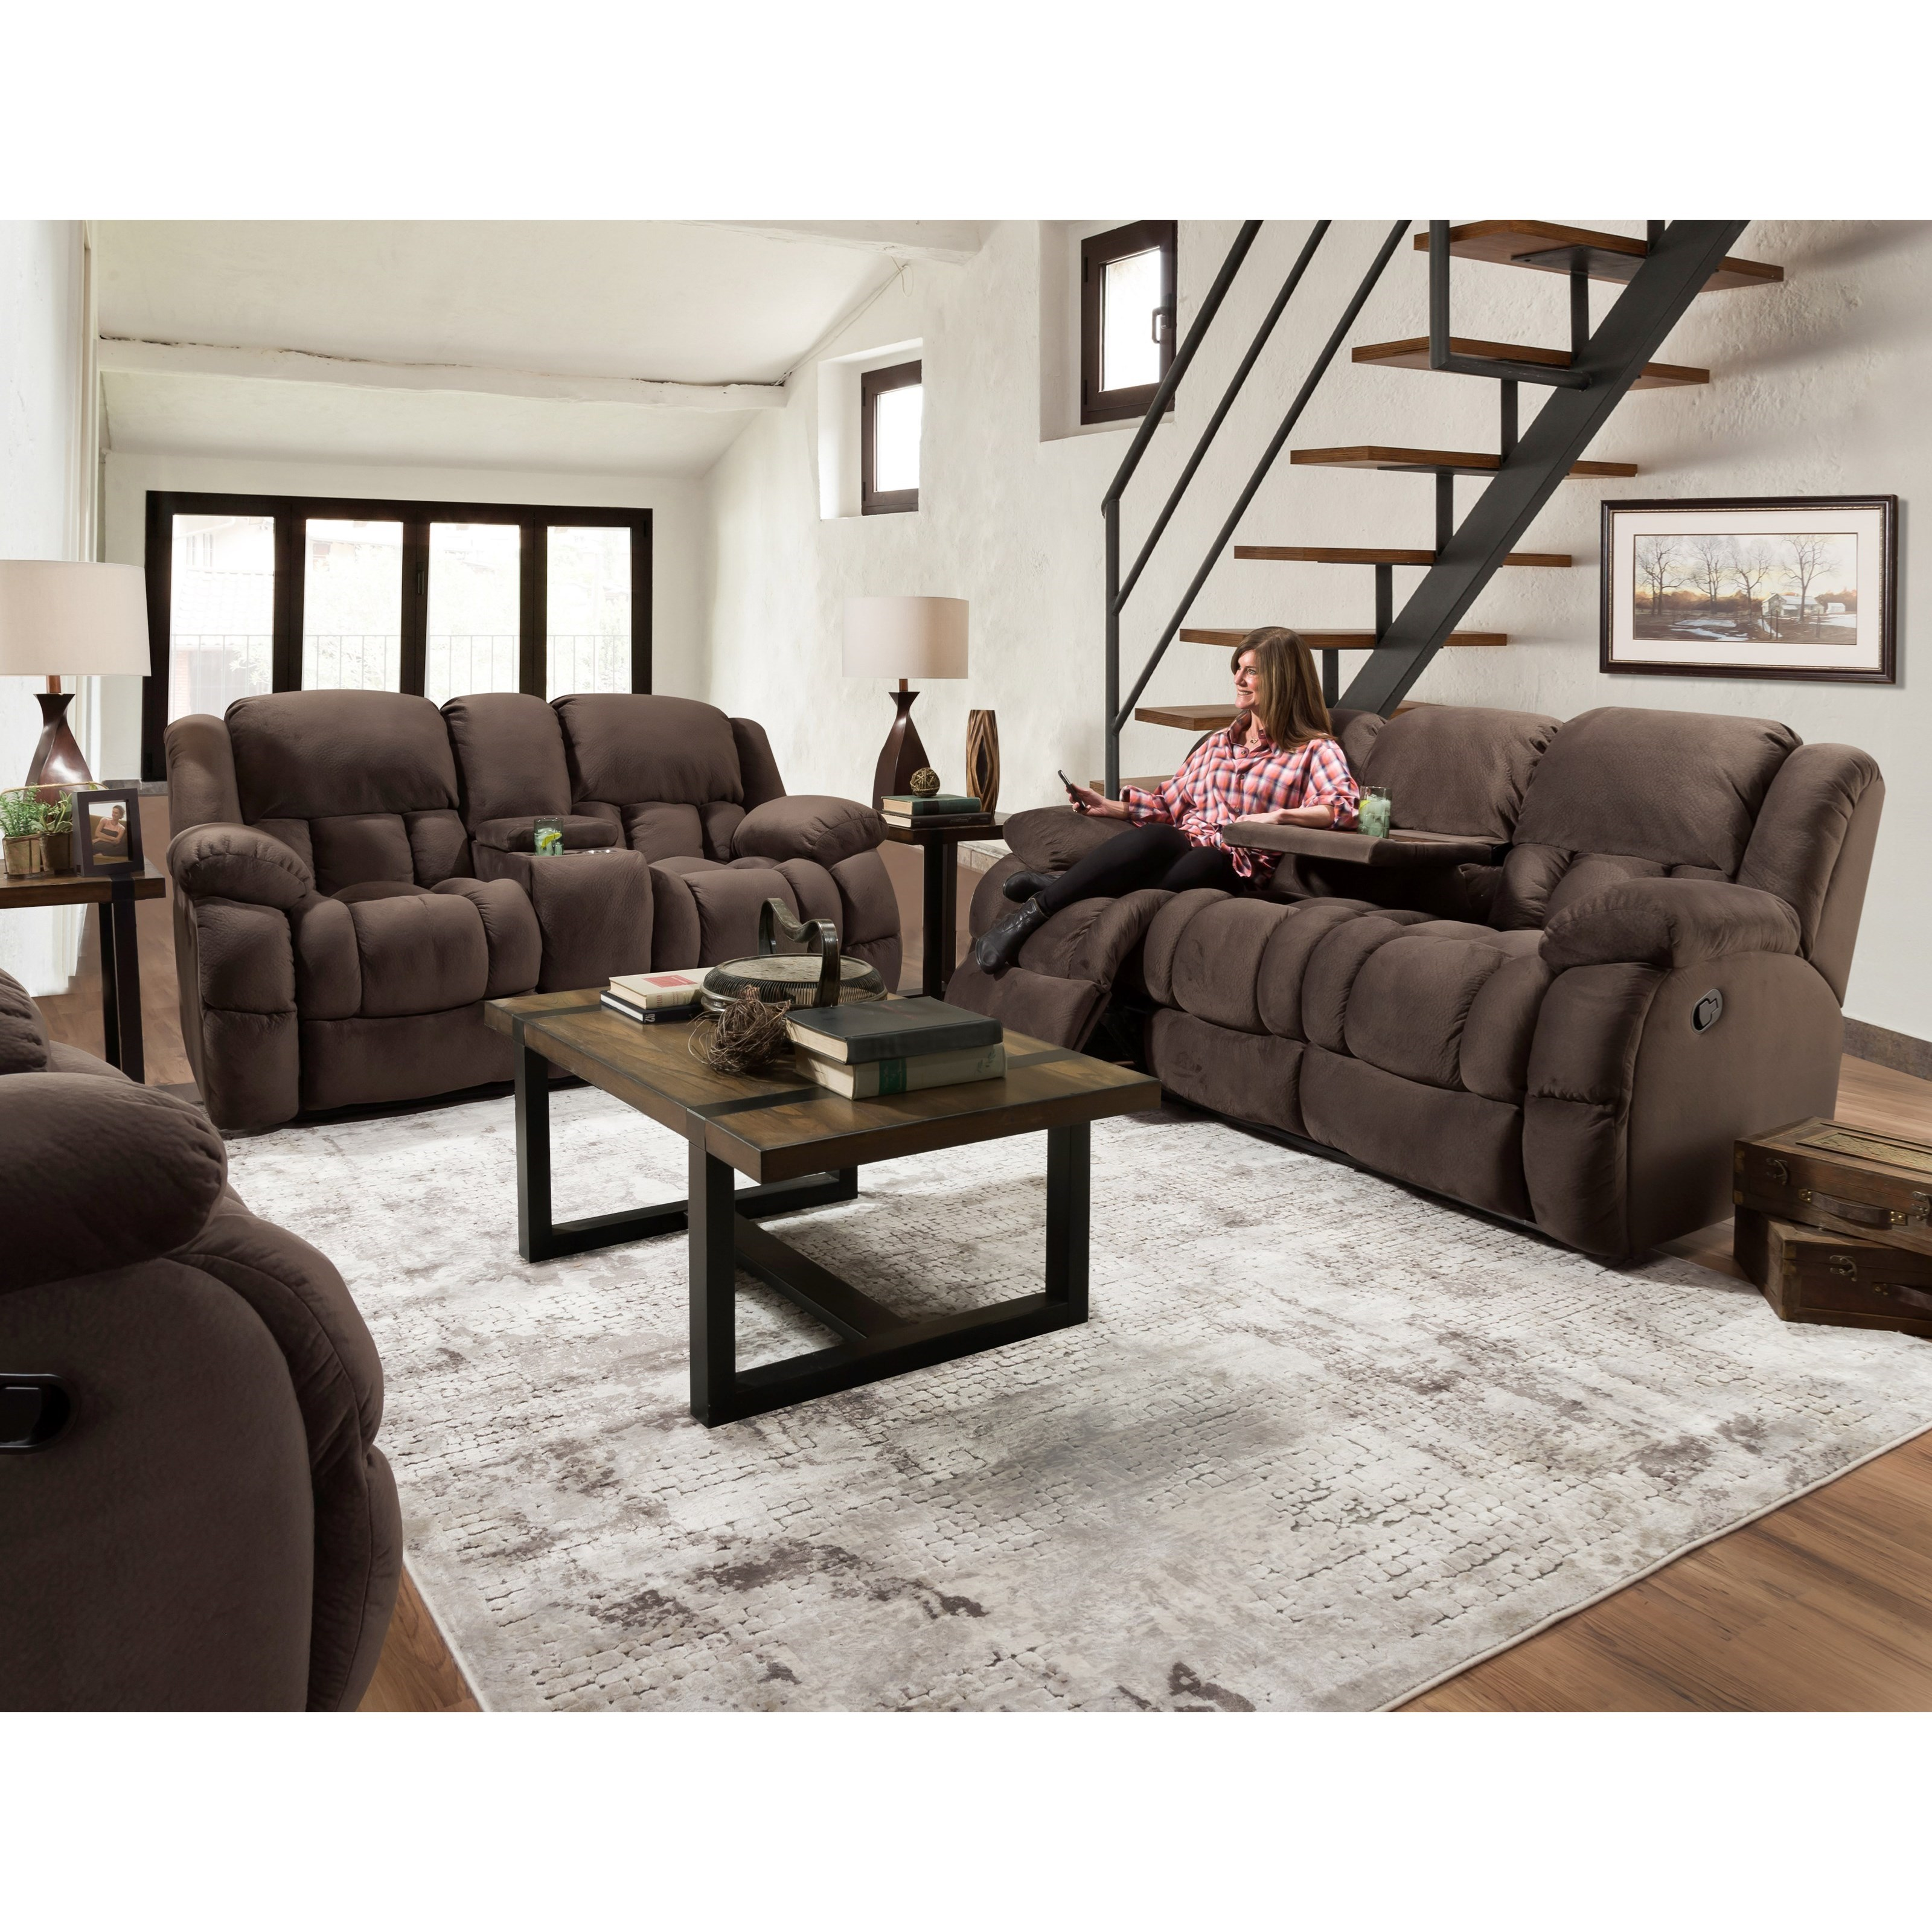 29901 Reclining Living Room Group by Corinthian at Story & Lee Furniture